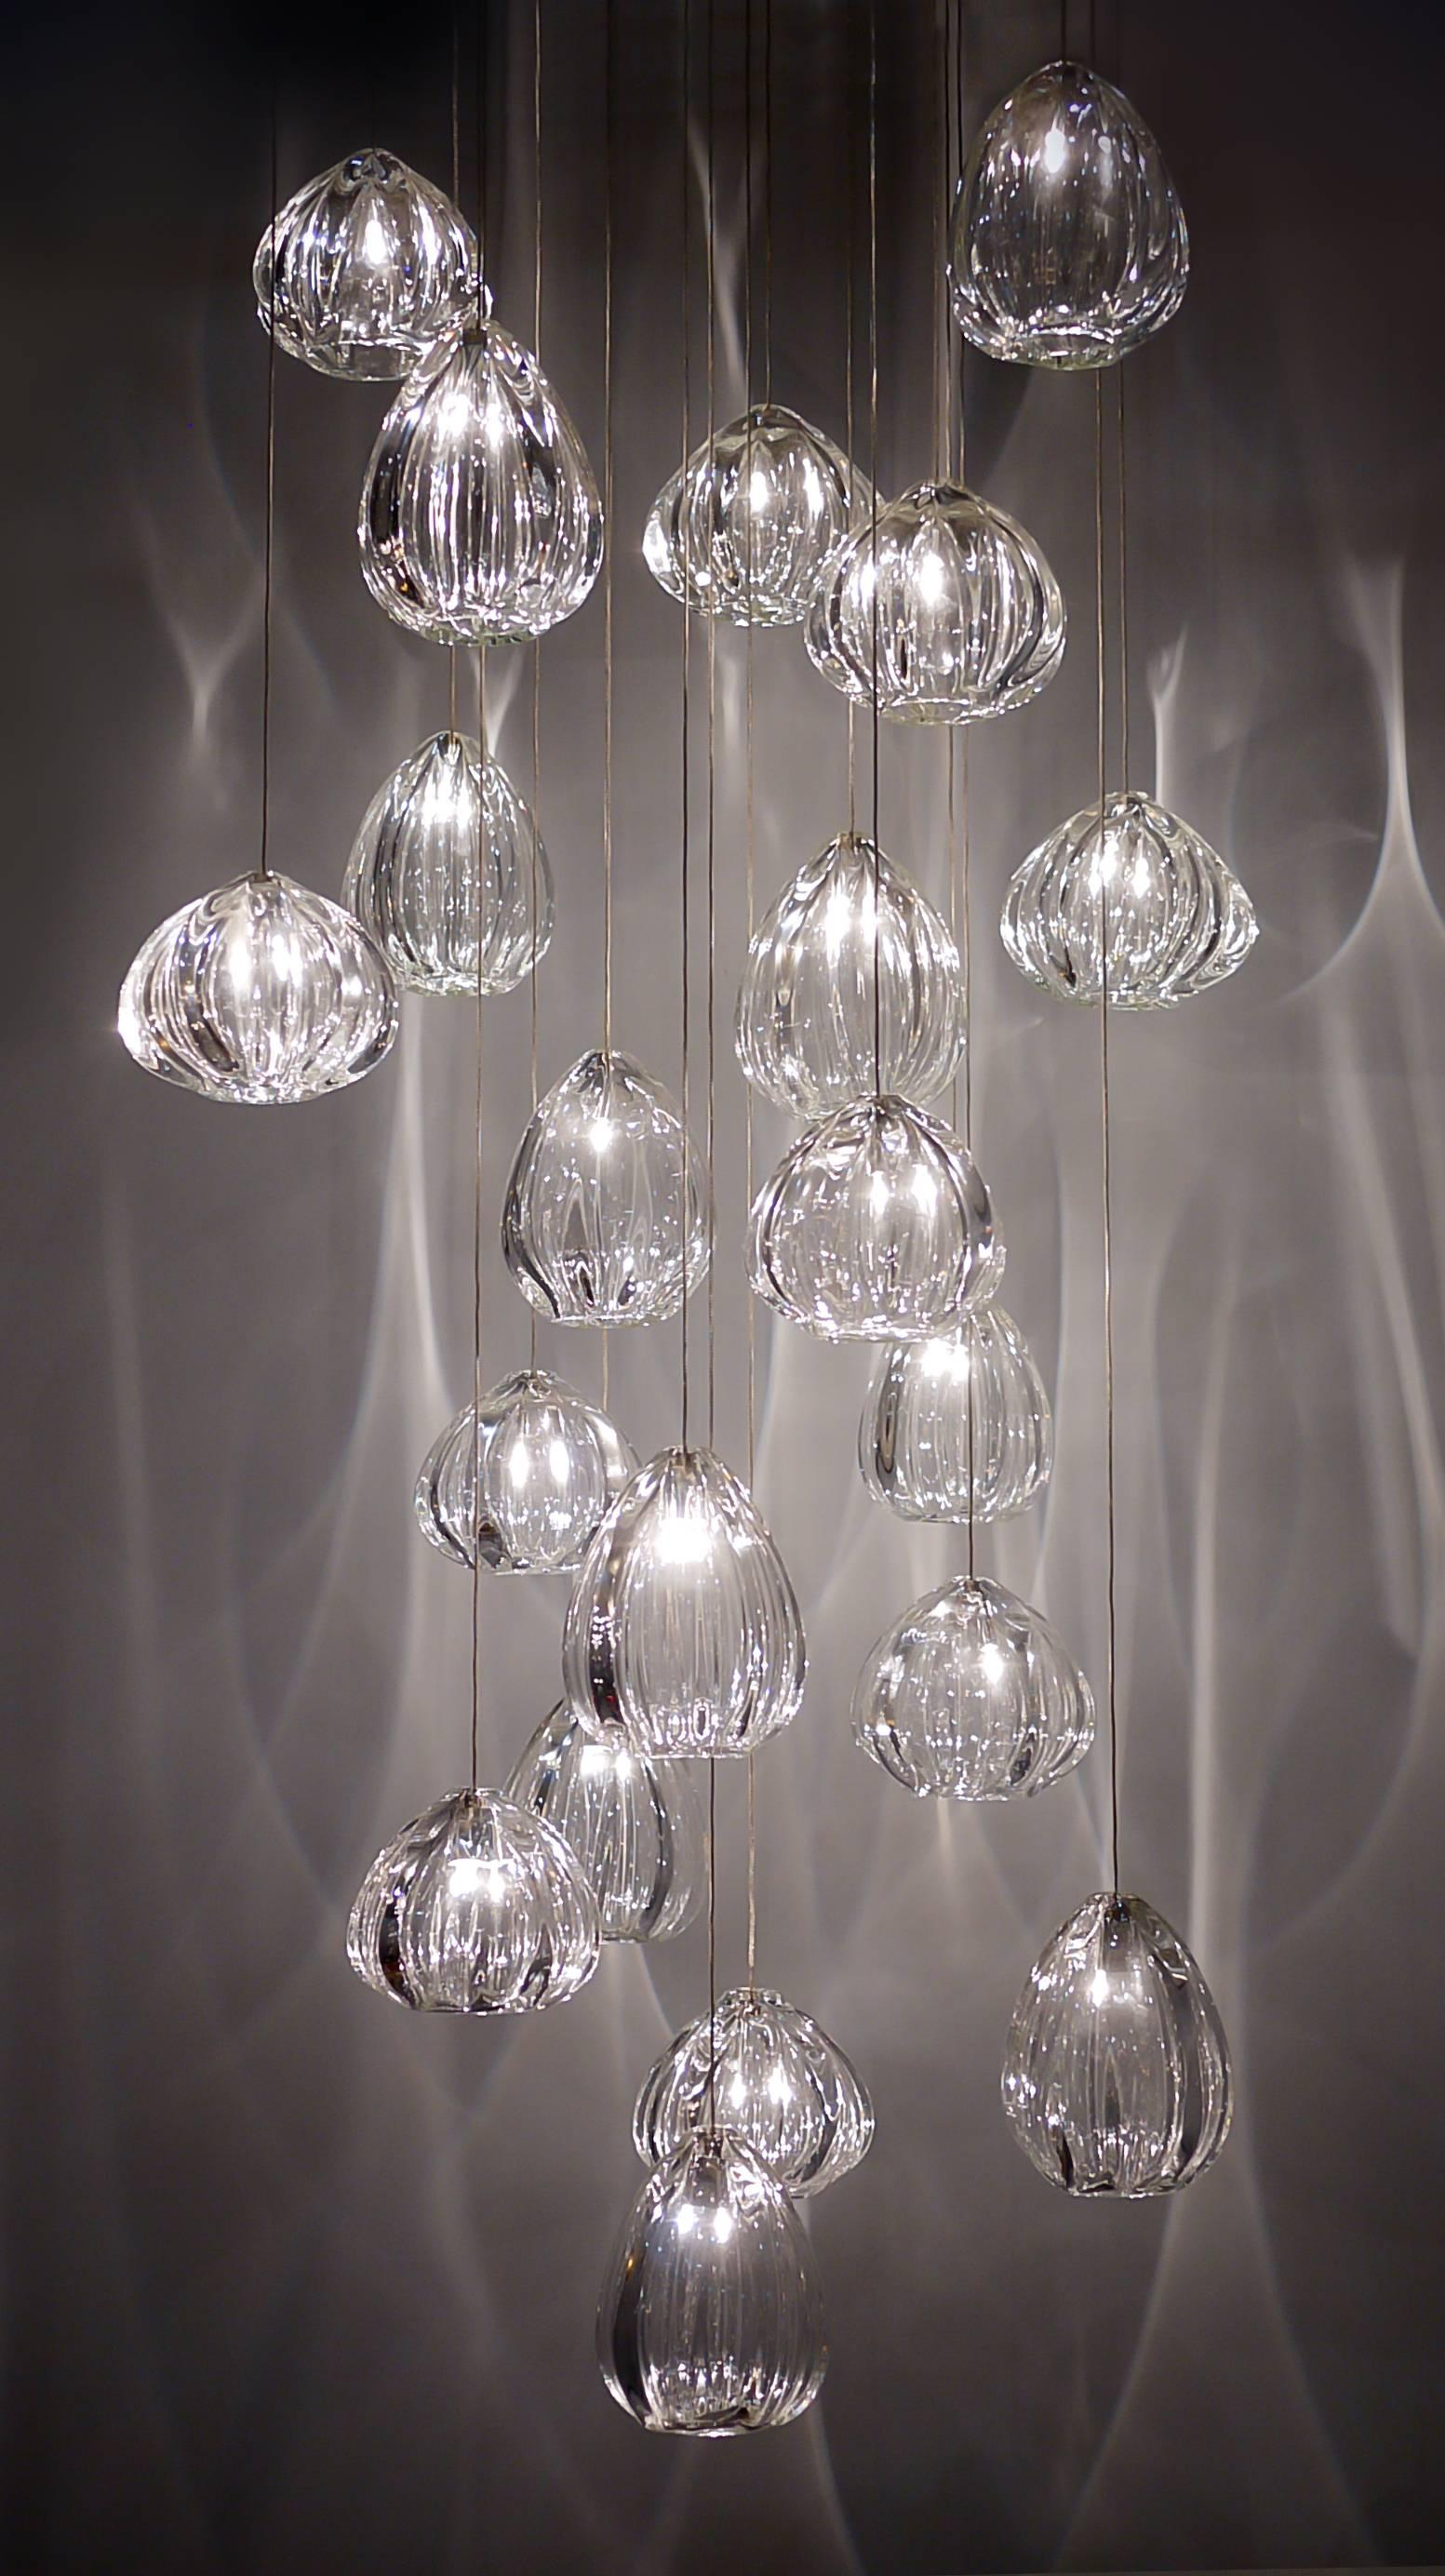 Modern Foyer Chandelier Hand Blown Glass By Siemon And Salazar Made To Order For Sale At 1stdibs